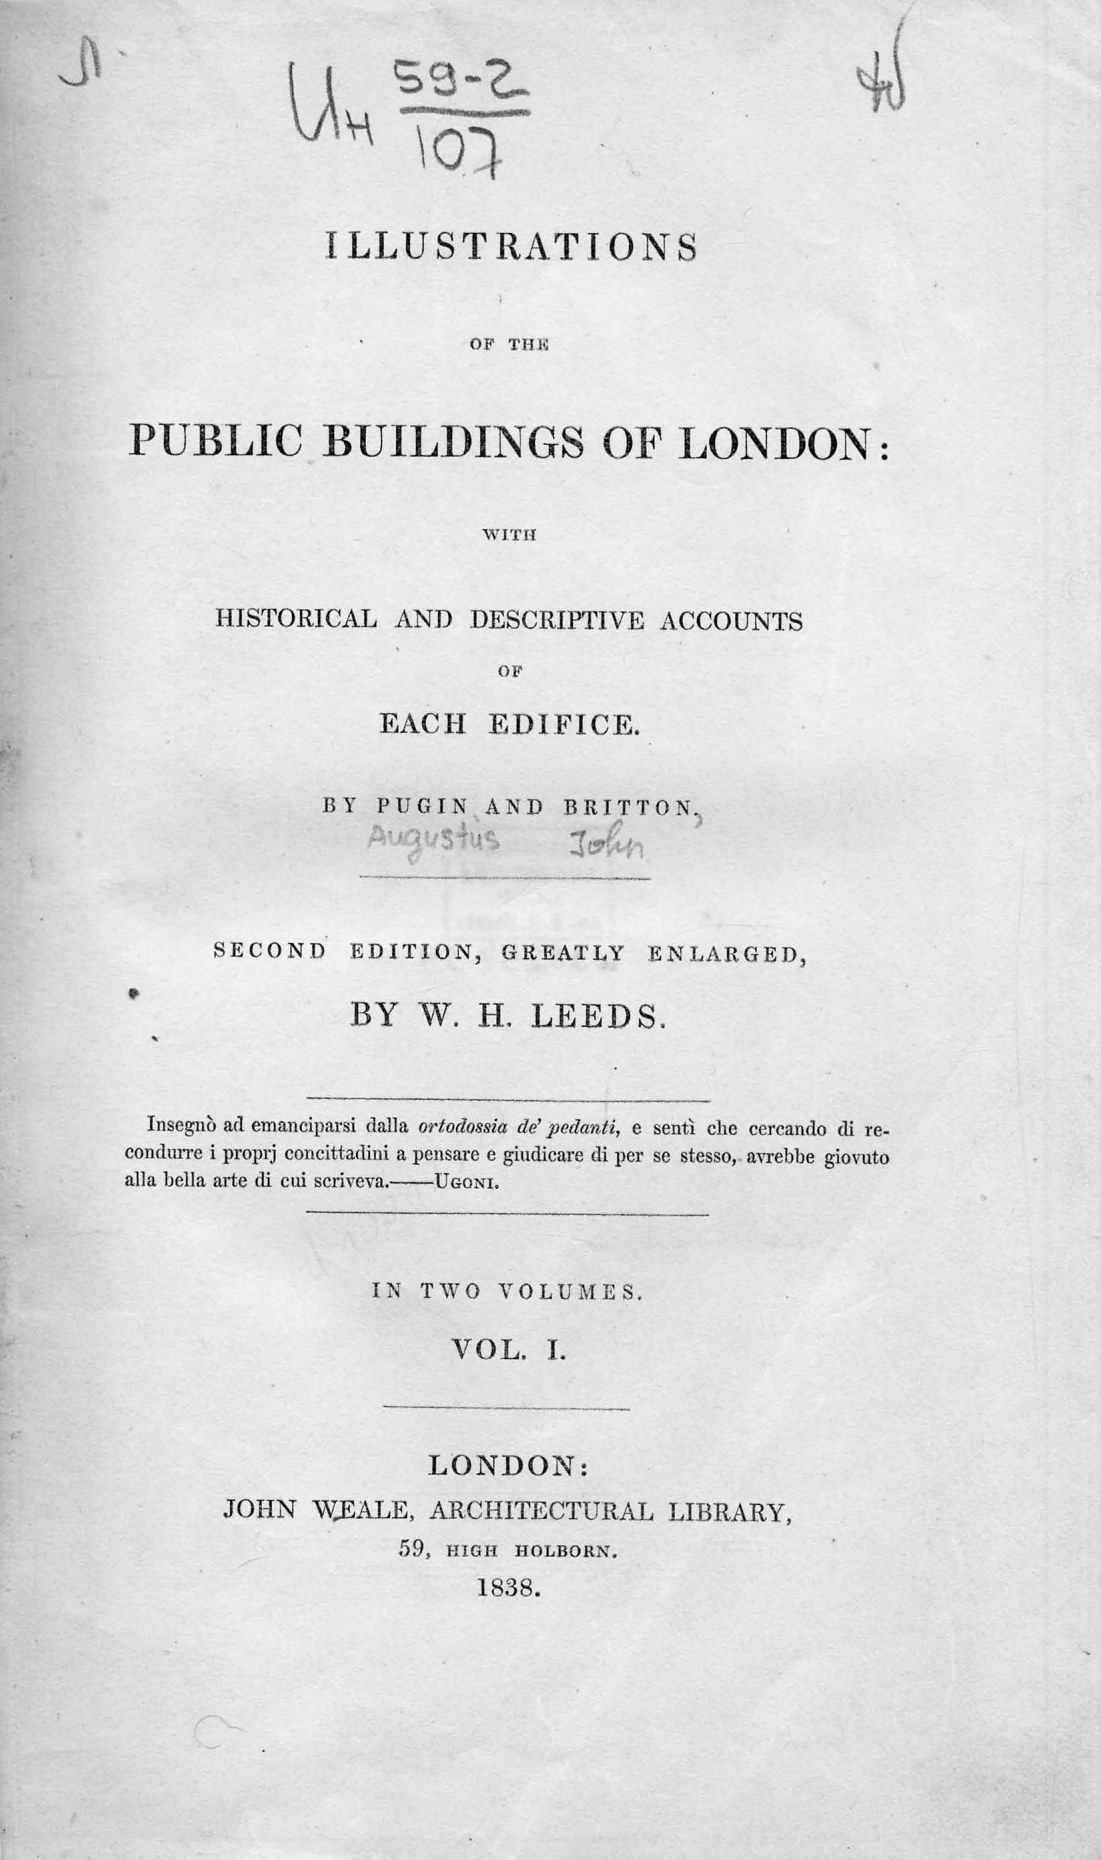 Illustrations of the public buildings of London : With historical and descriptive accounts of each edifice : In 2 volumes / by Pugin and Britton. — Second edition, greatly enlarged by W. H. Leeds. — London : John Weale, 1838